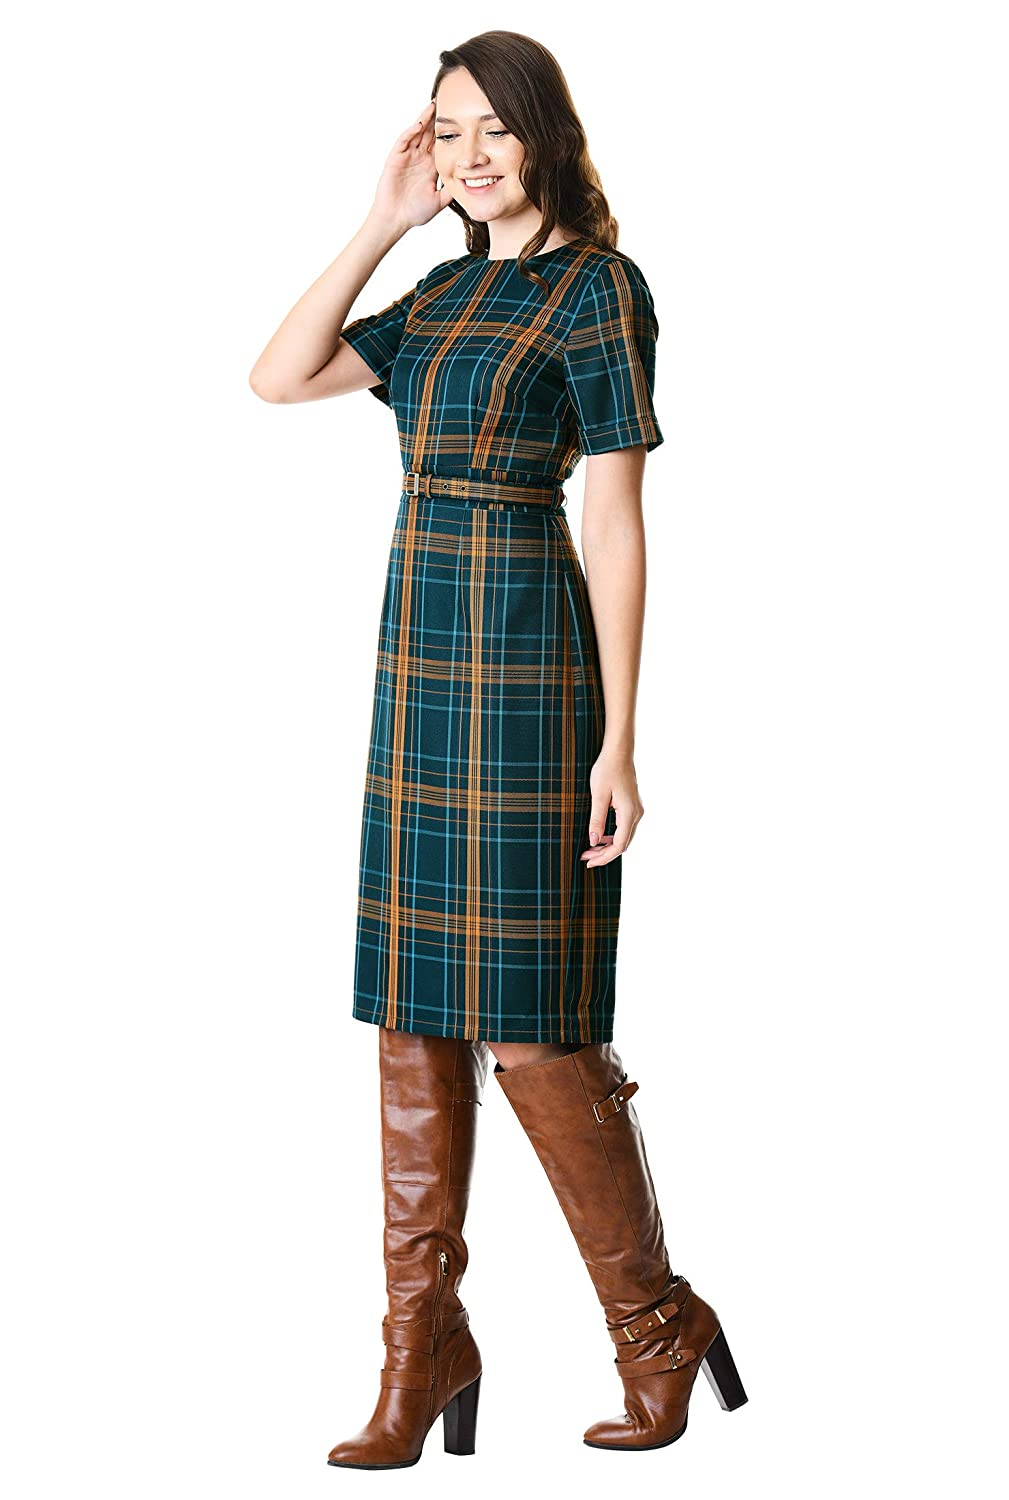 1950s Swing Dresses | 50s Swing Dress eShakti Womens Plaid Suiting Belted Sheath Dress $99.95 AT vintagedancer.com